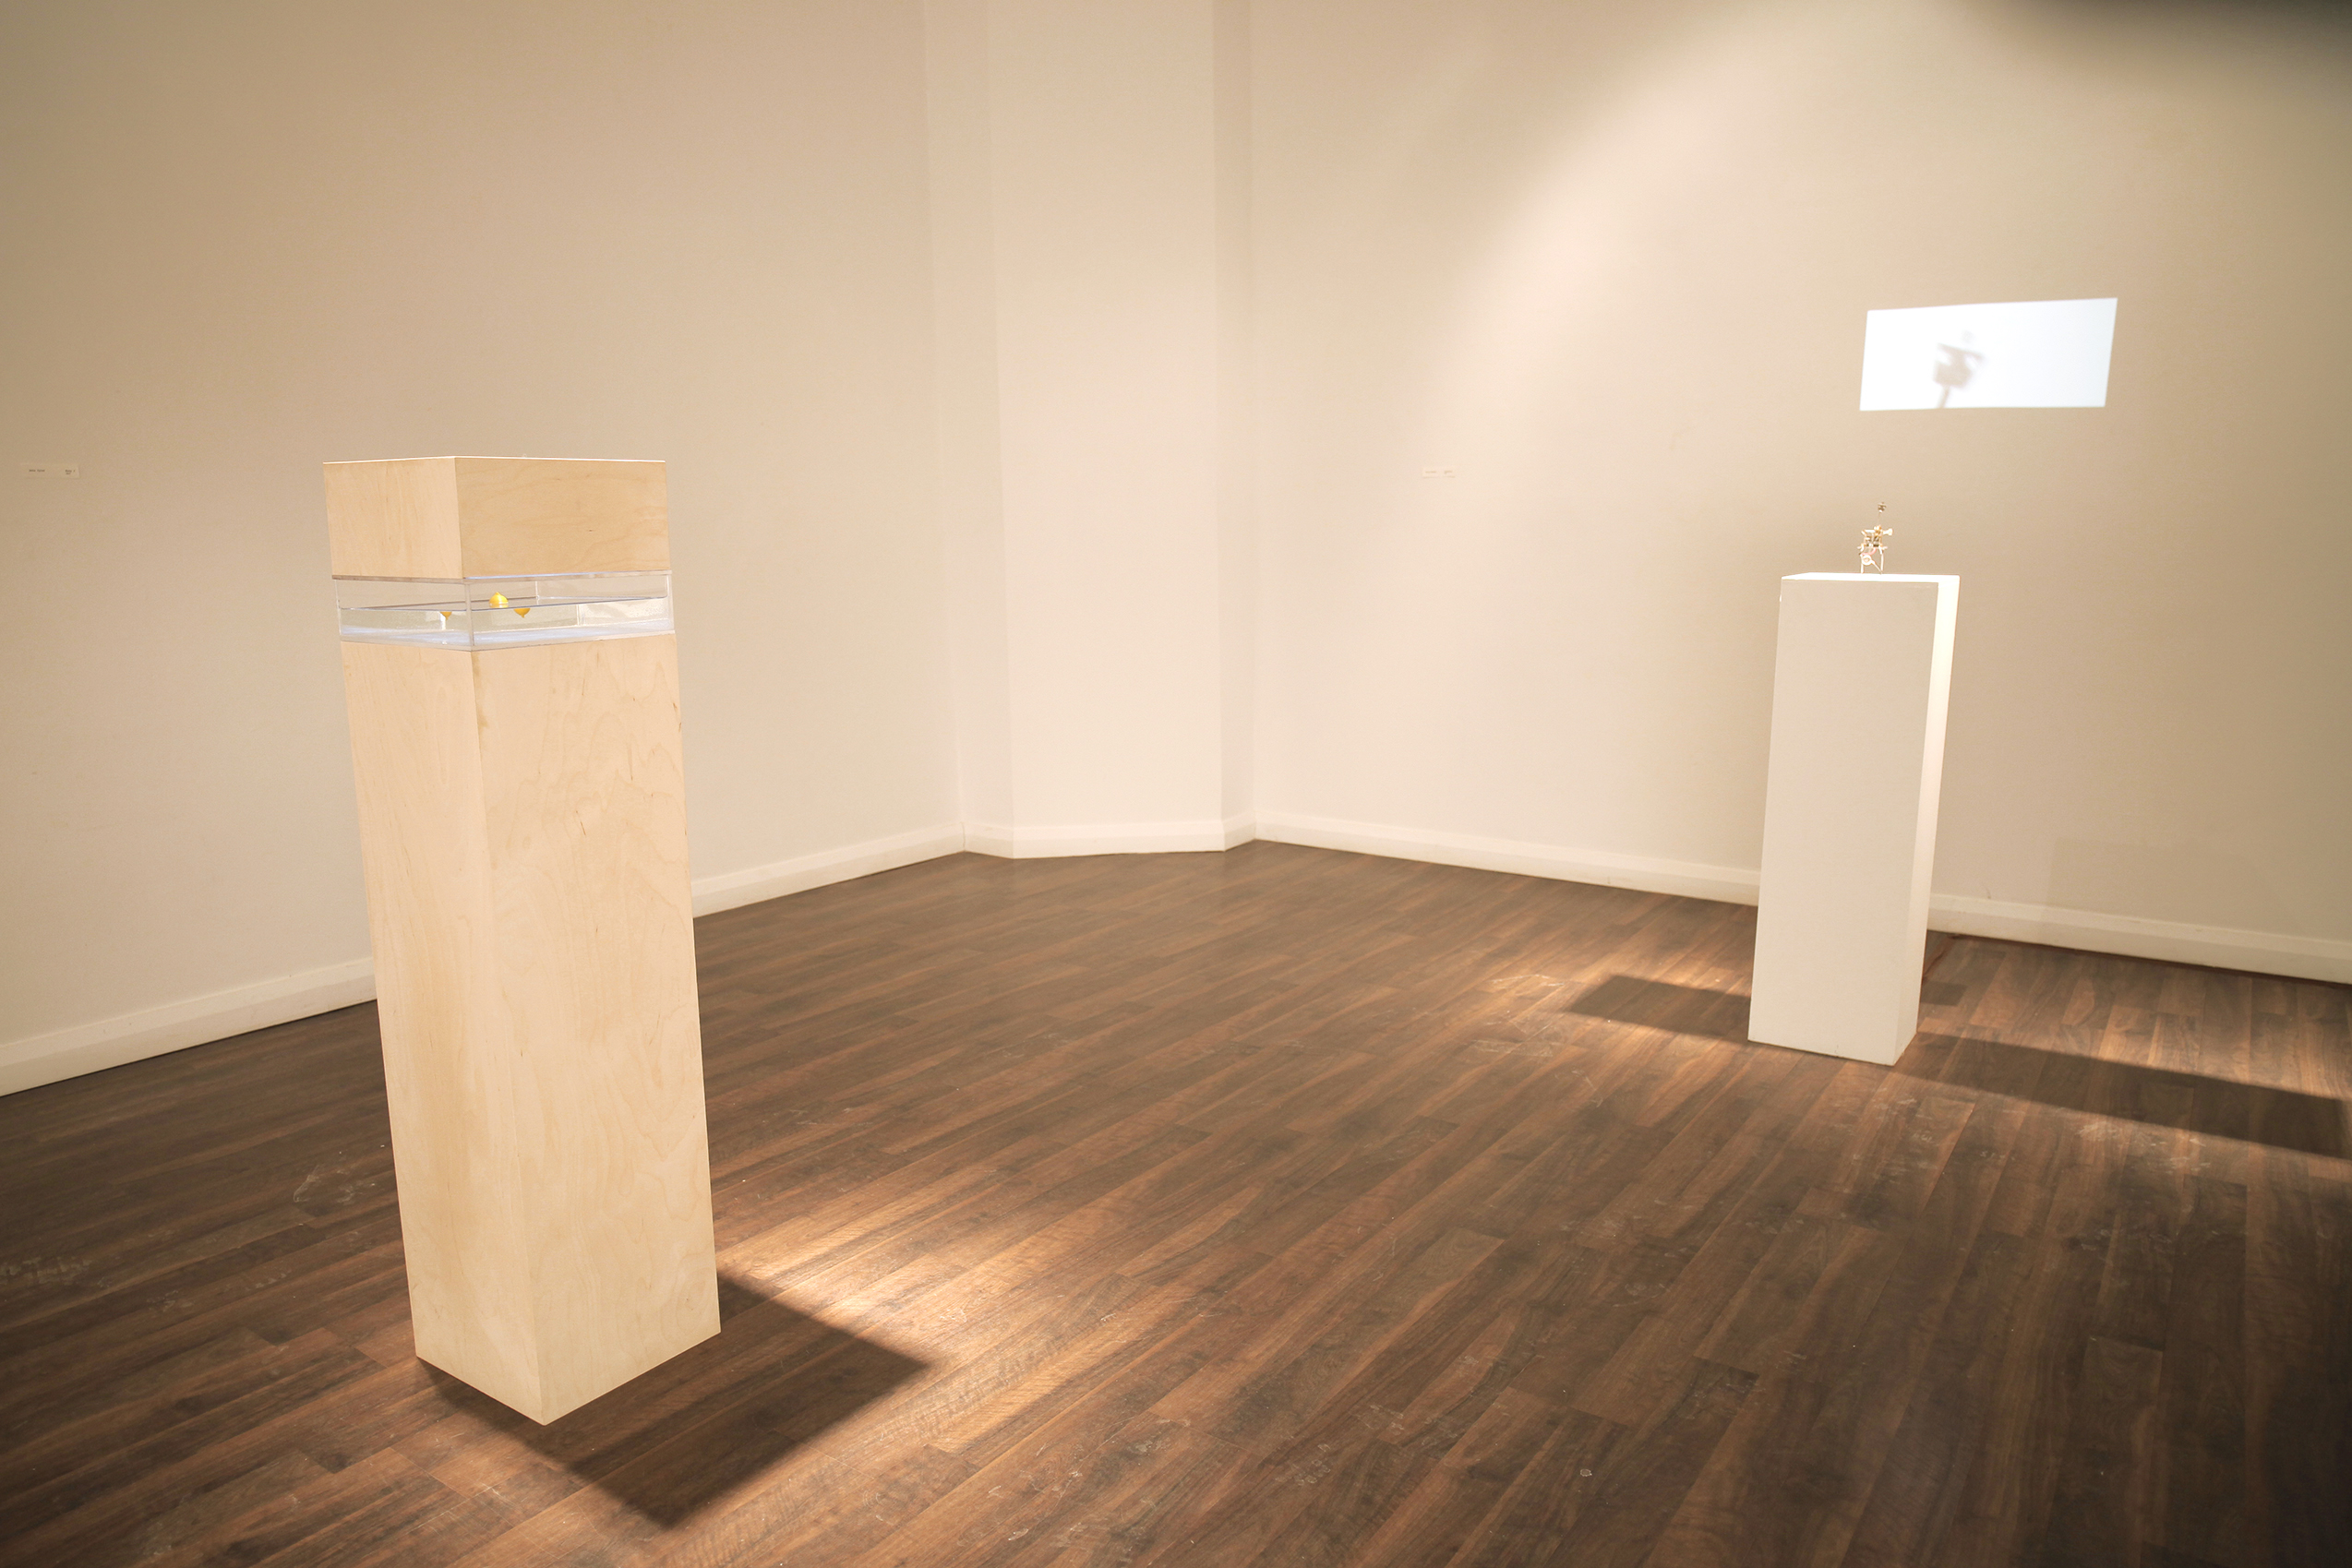 Installation View, Gallery 115, 2015